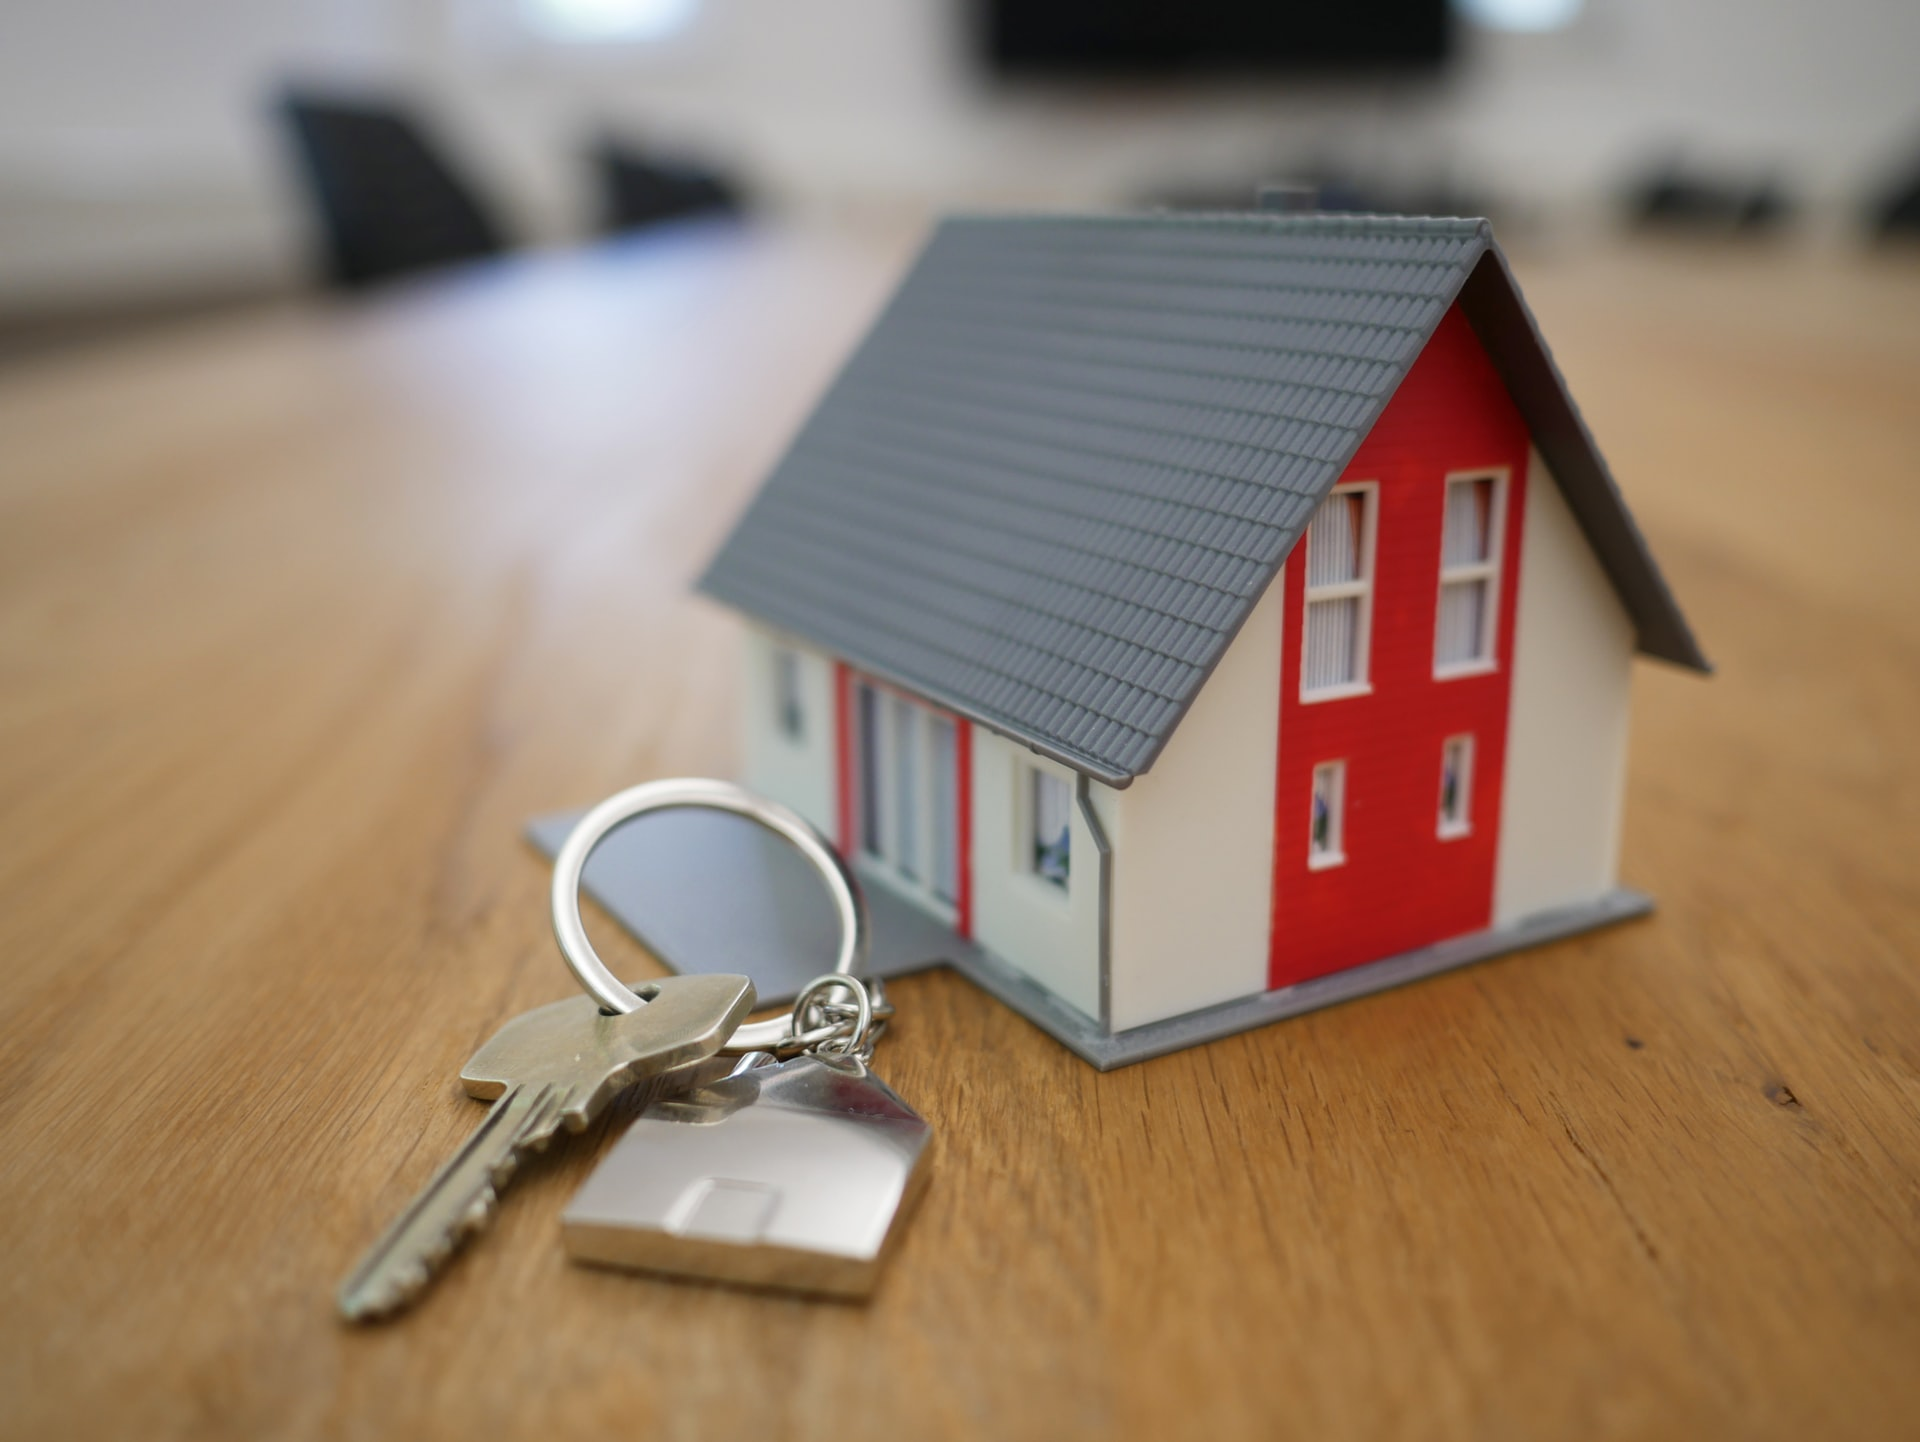 A toy house placed next to a house key